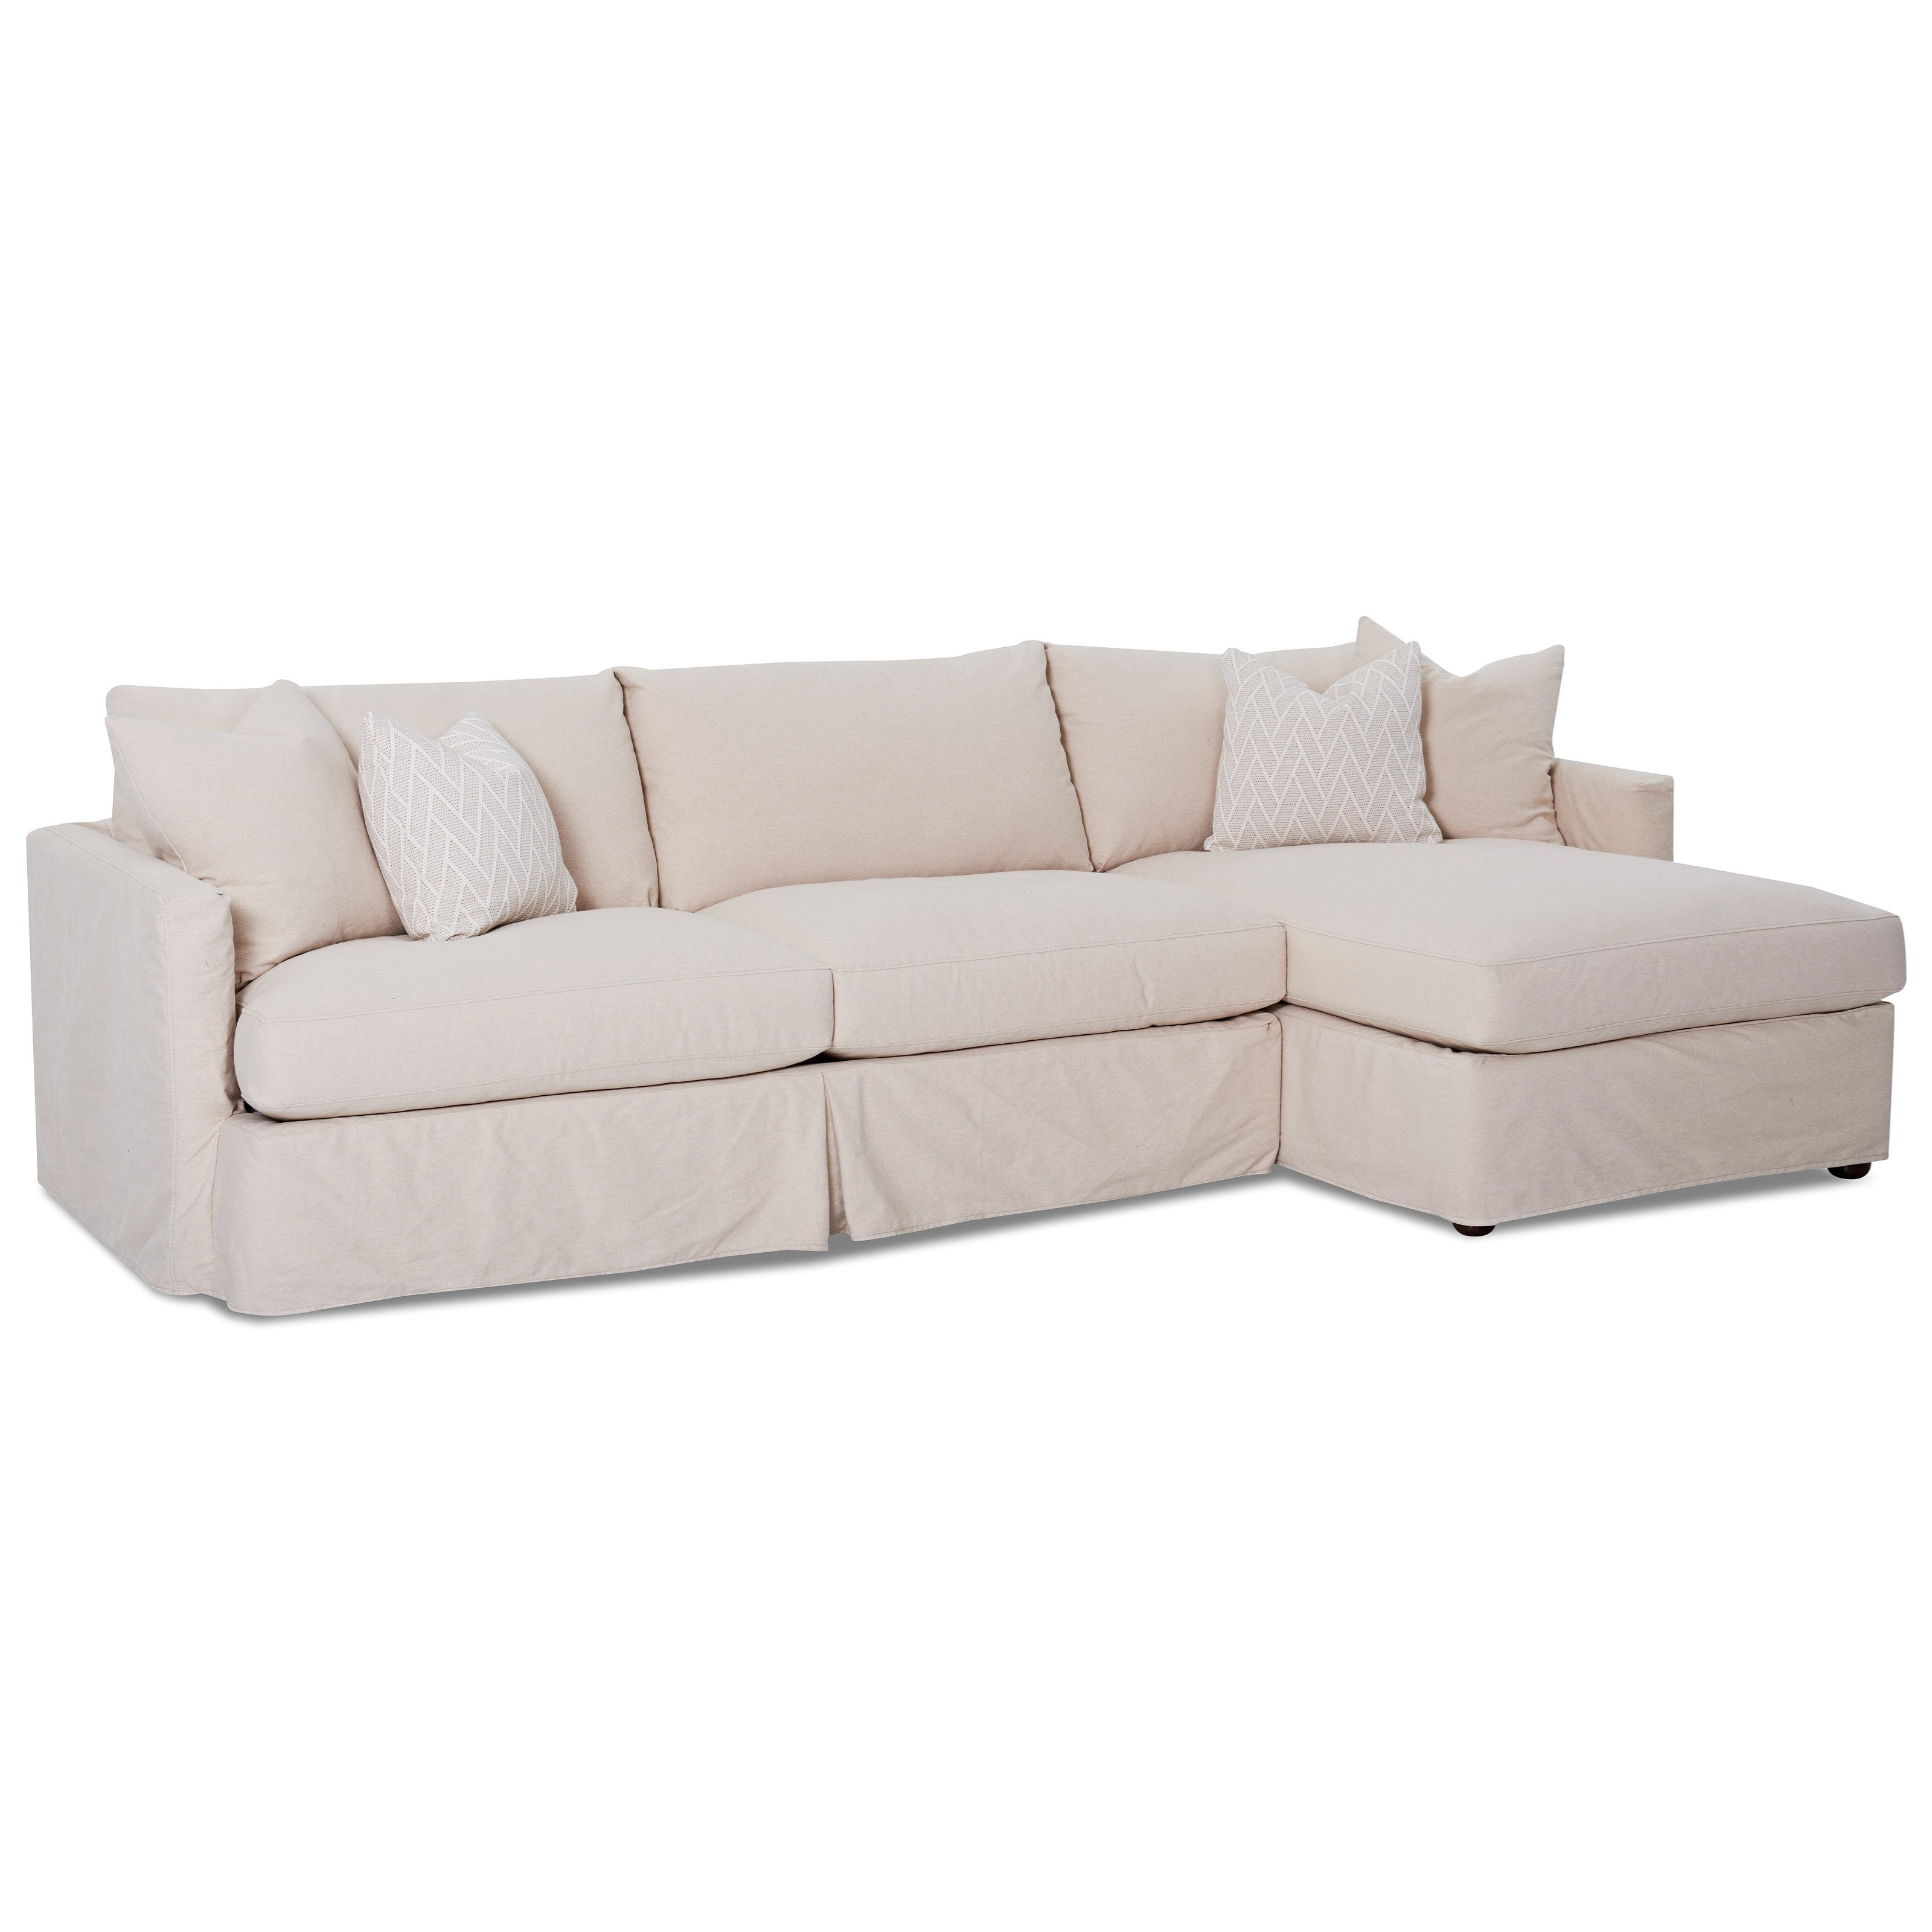 Klaussner Leisure 2 Pc Sectional Sofa with Slipcover - Item Number: D4133L S+D4133 R CHASE